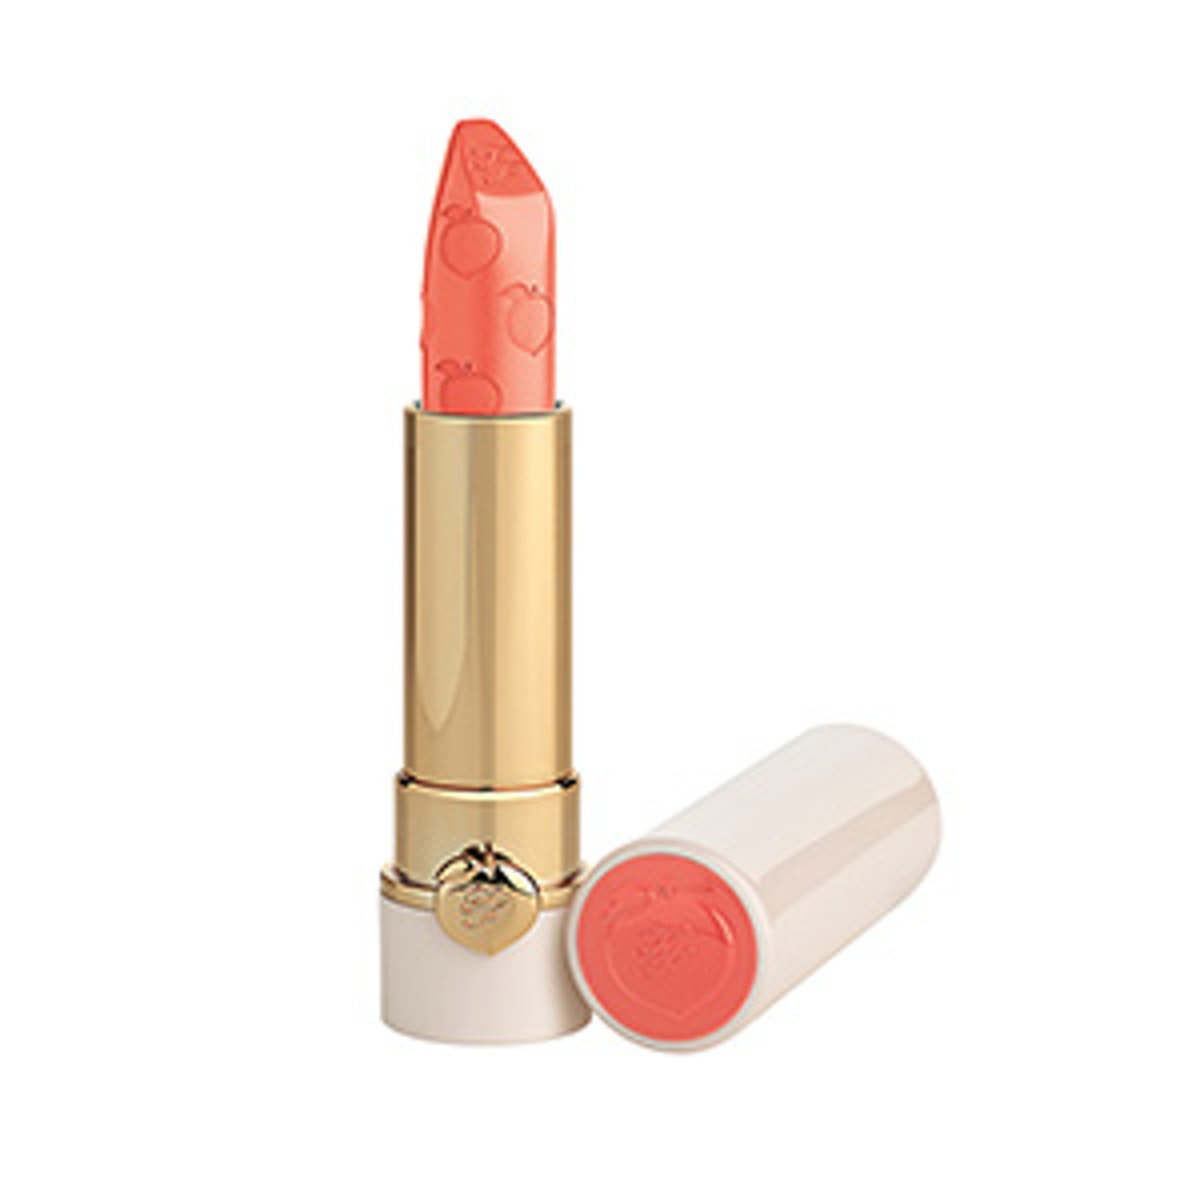 Peach Kiss Lipstick in Everything Is Peachy